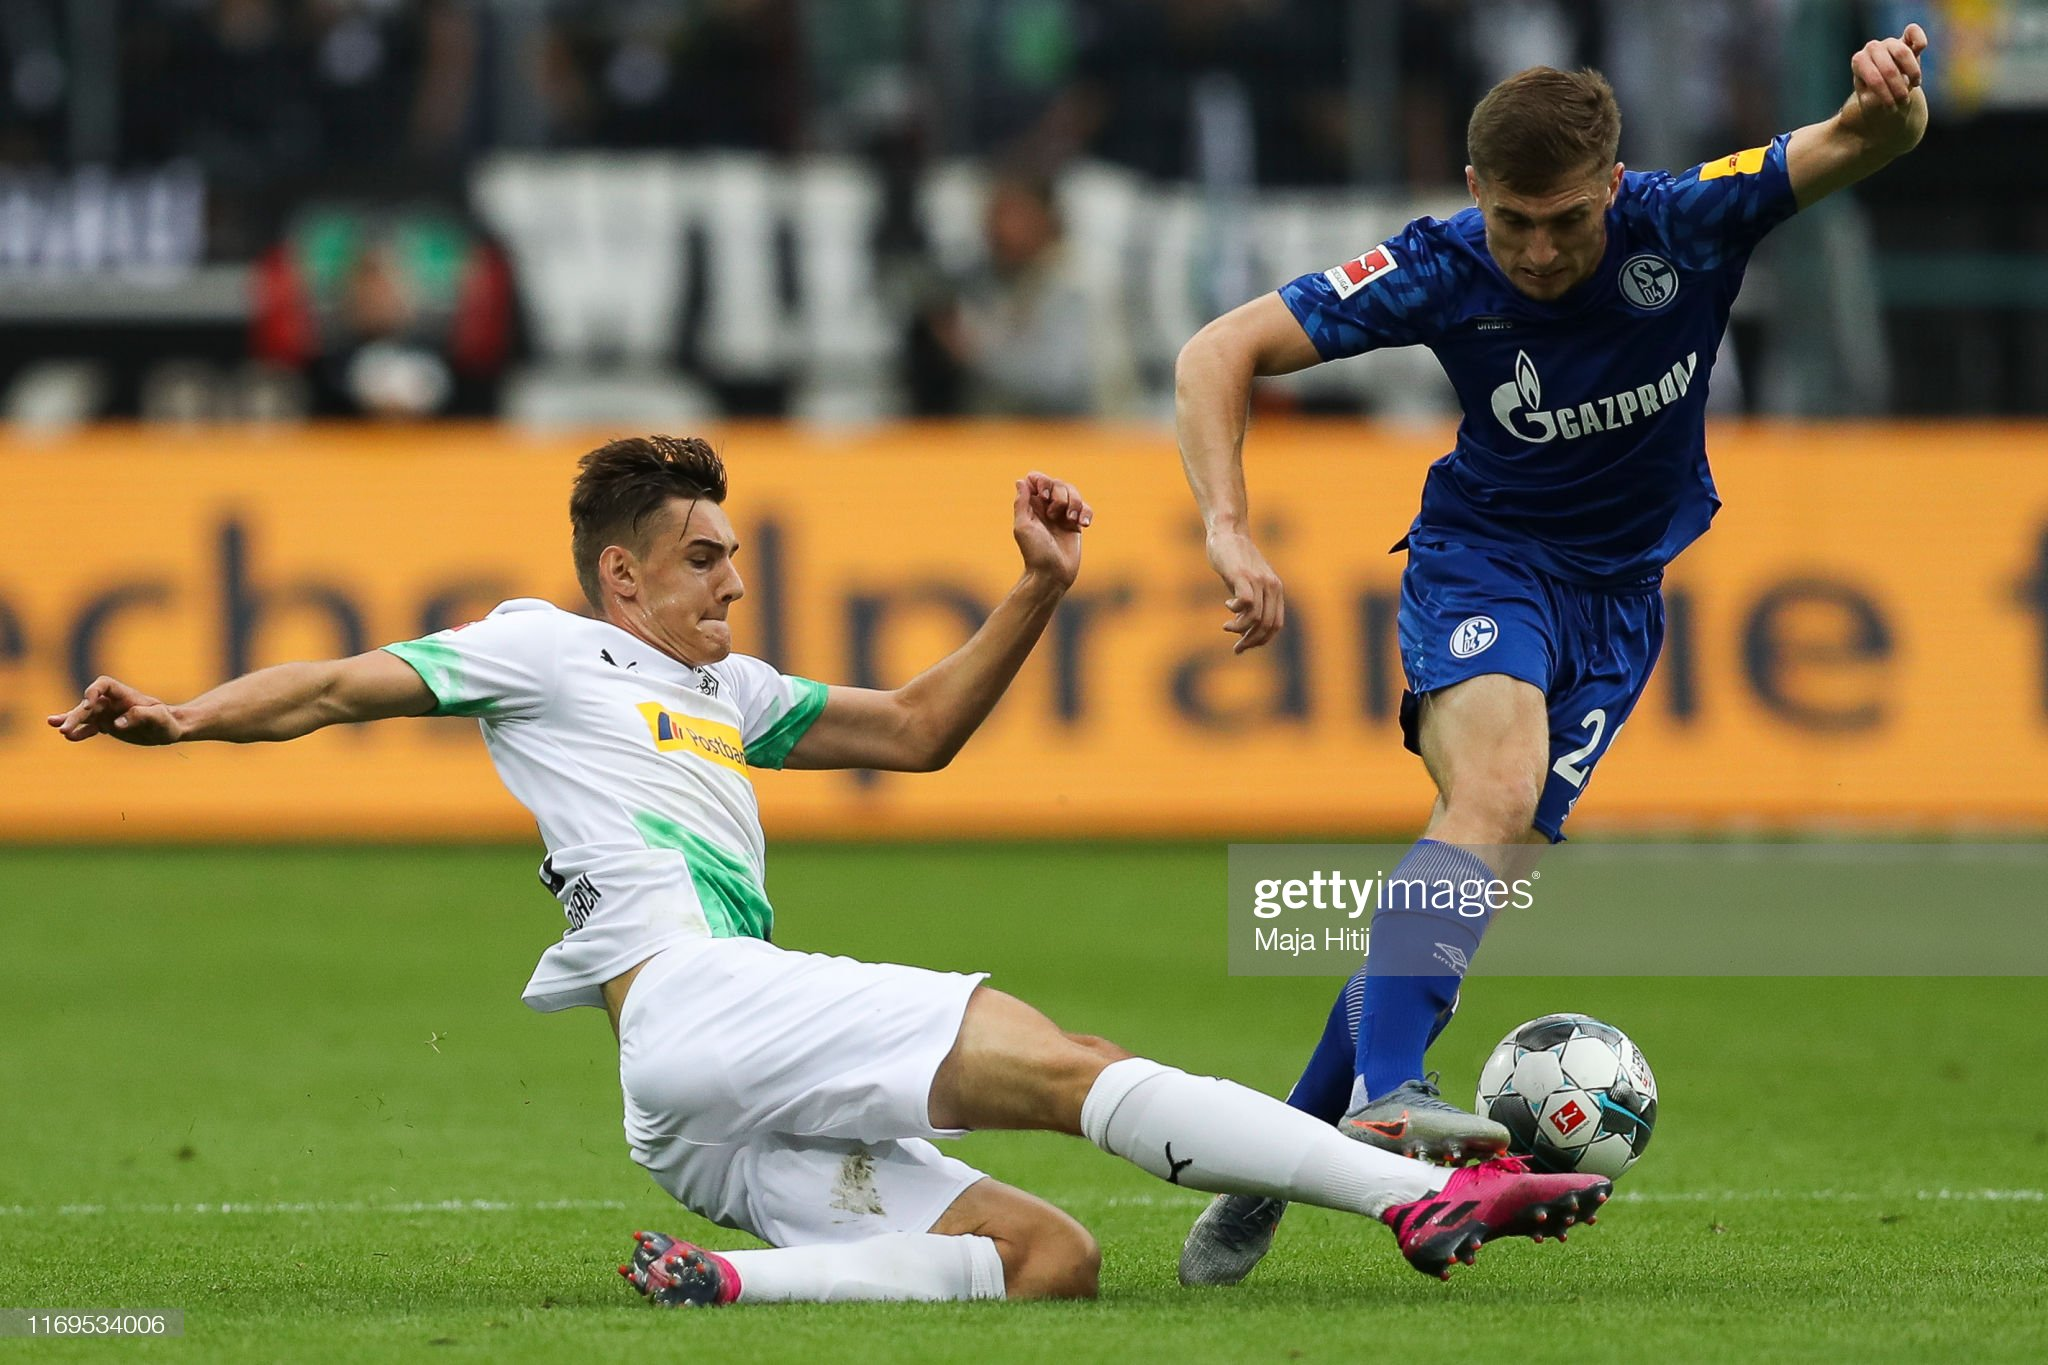 Schalke v Monchengladbach preview, prediction and odds